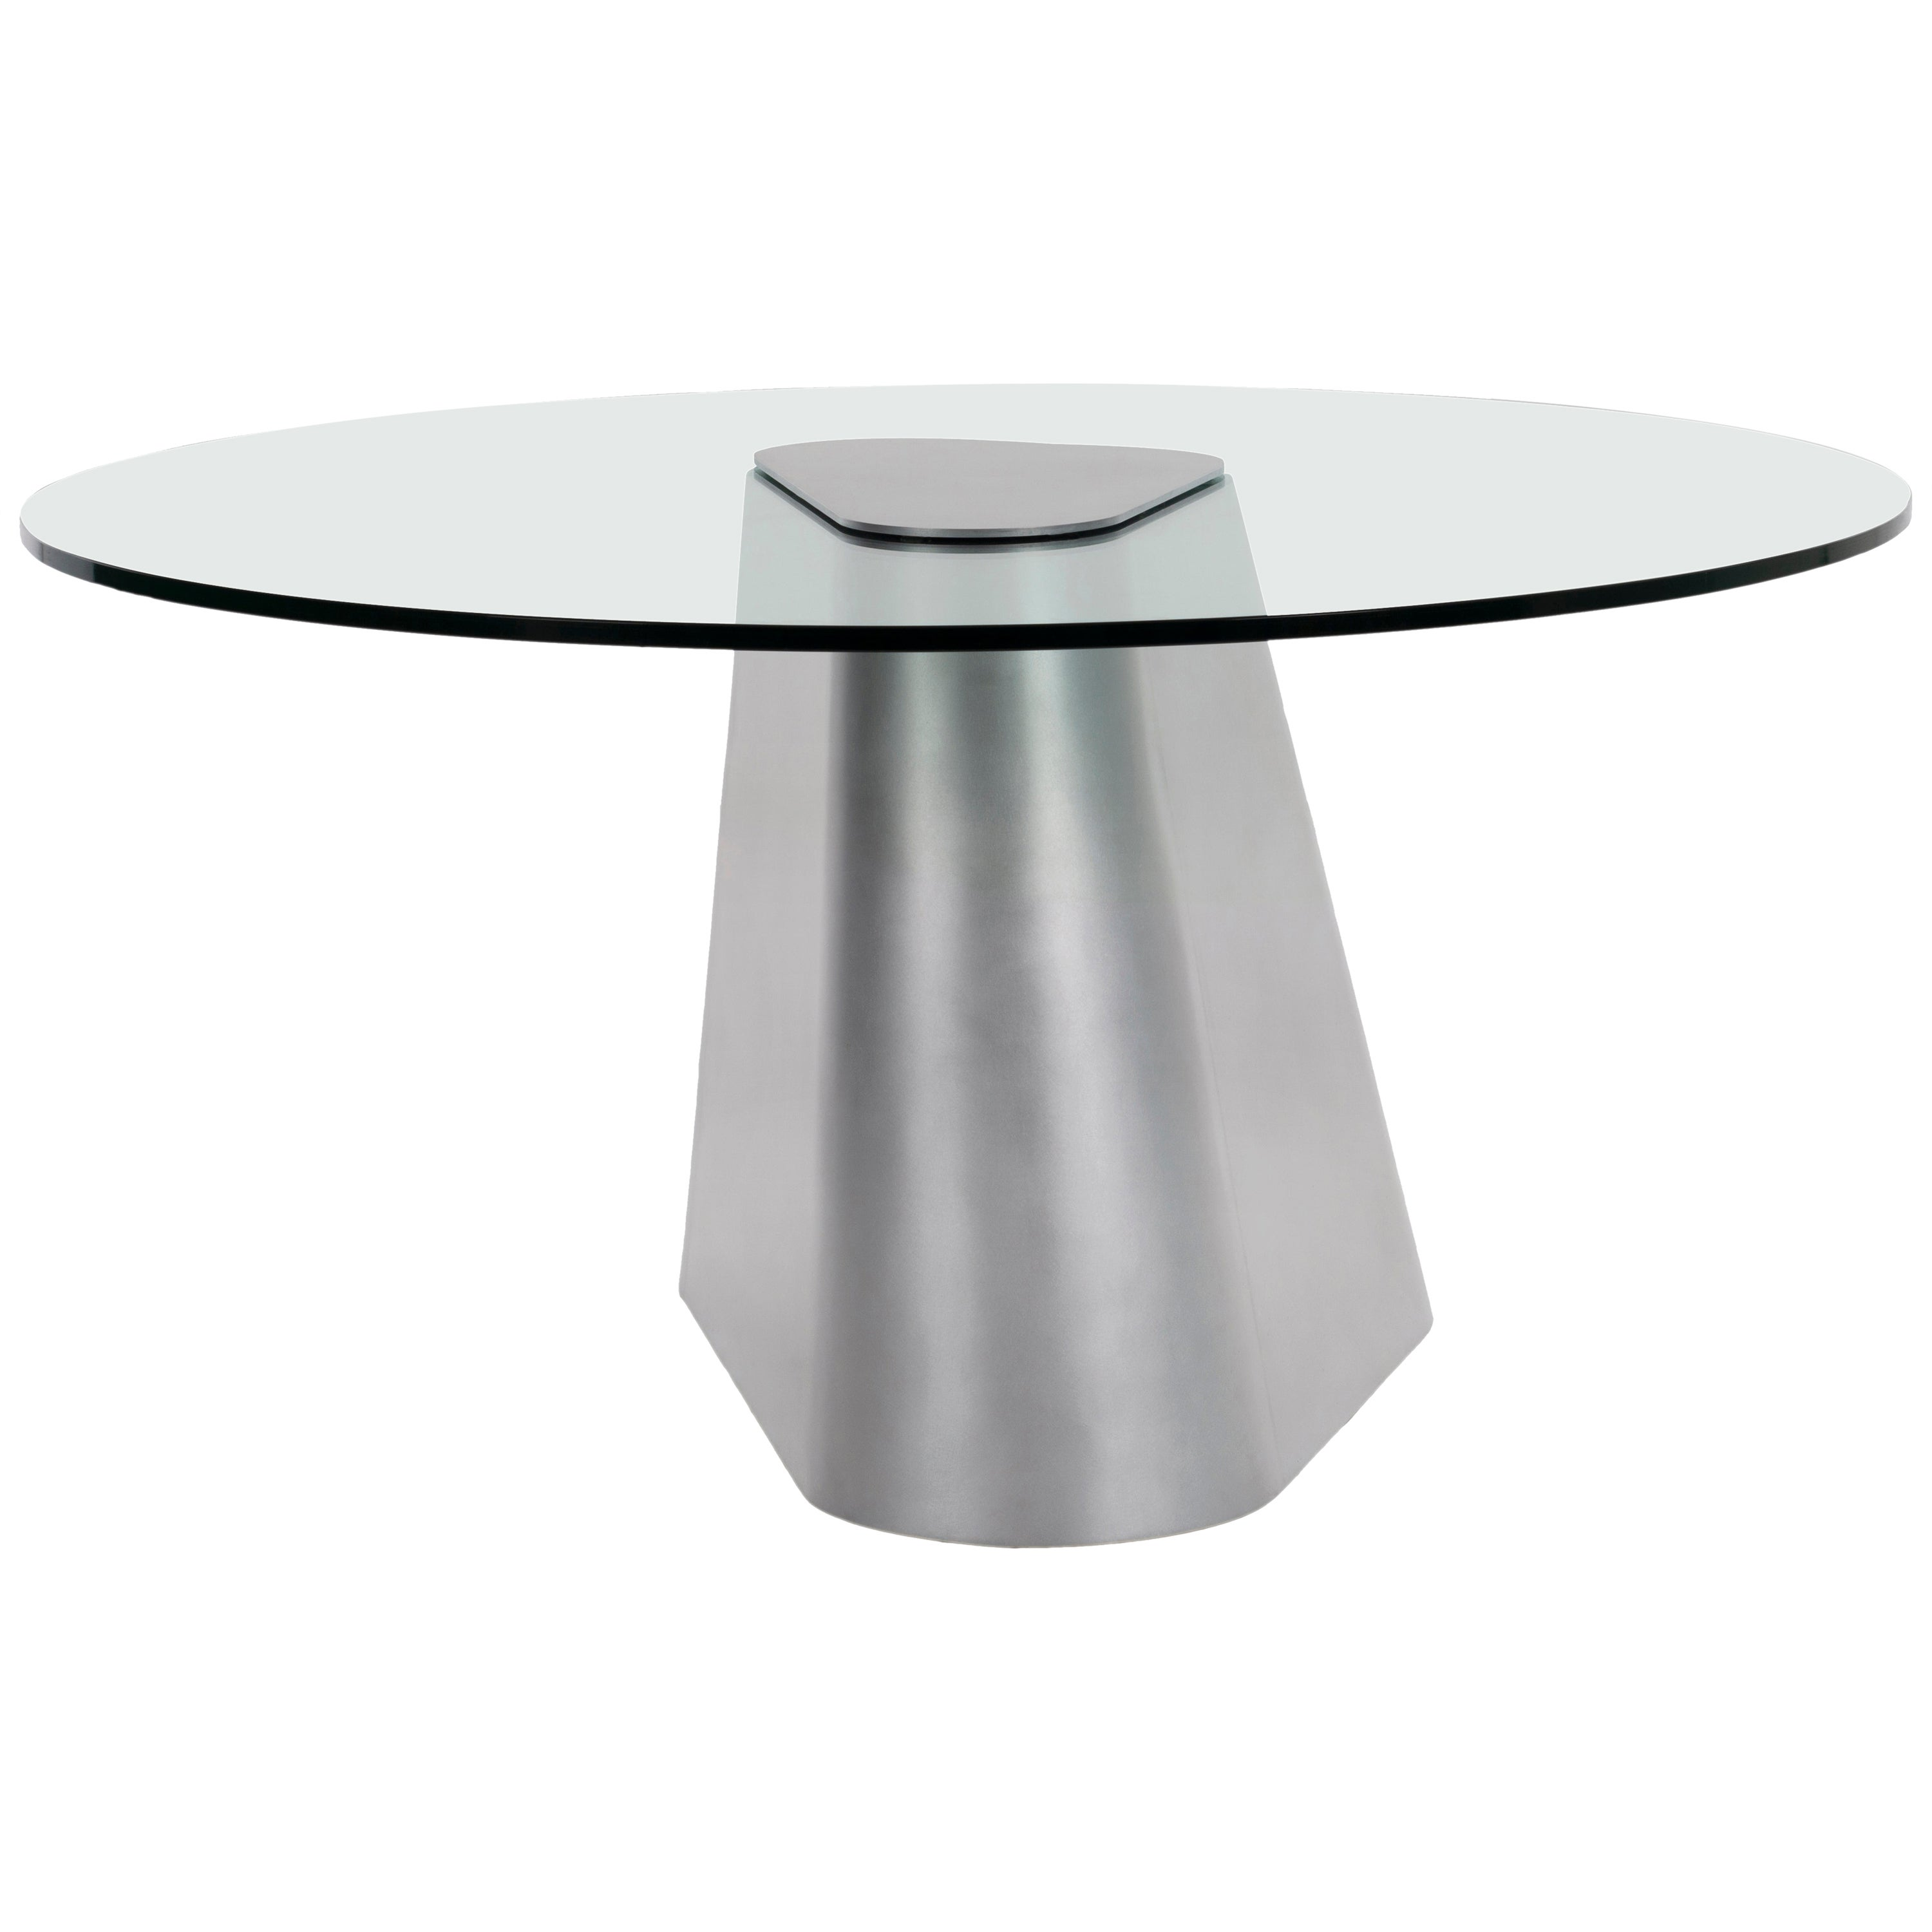 Sculptural TM Dining Entry Table in Waxed Aluminum and Glass by Jonathan Nesci